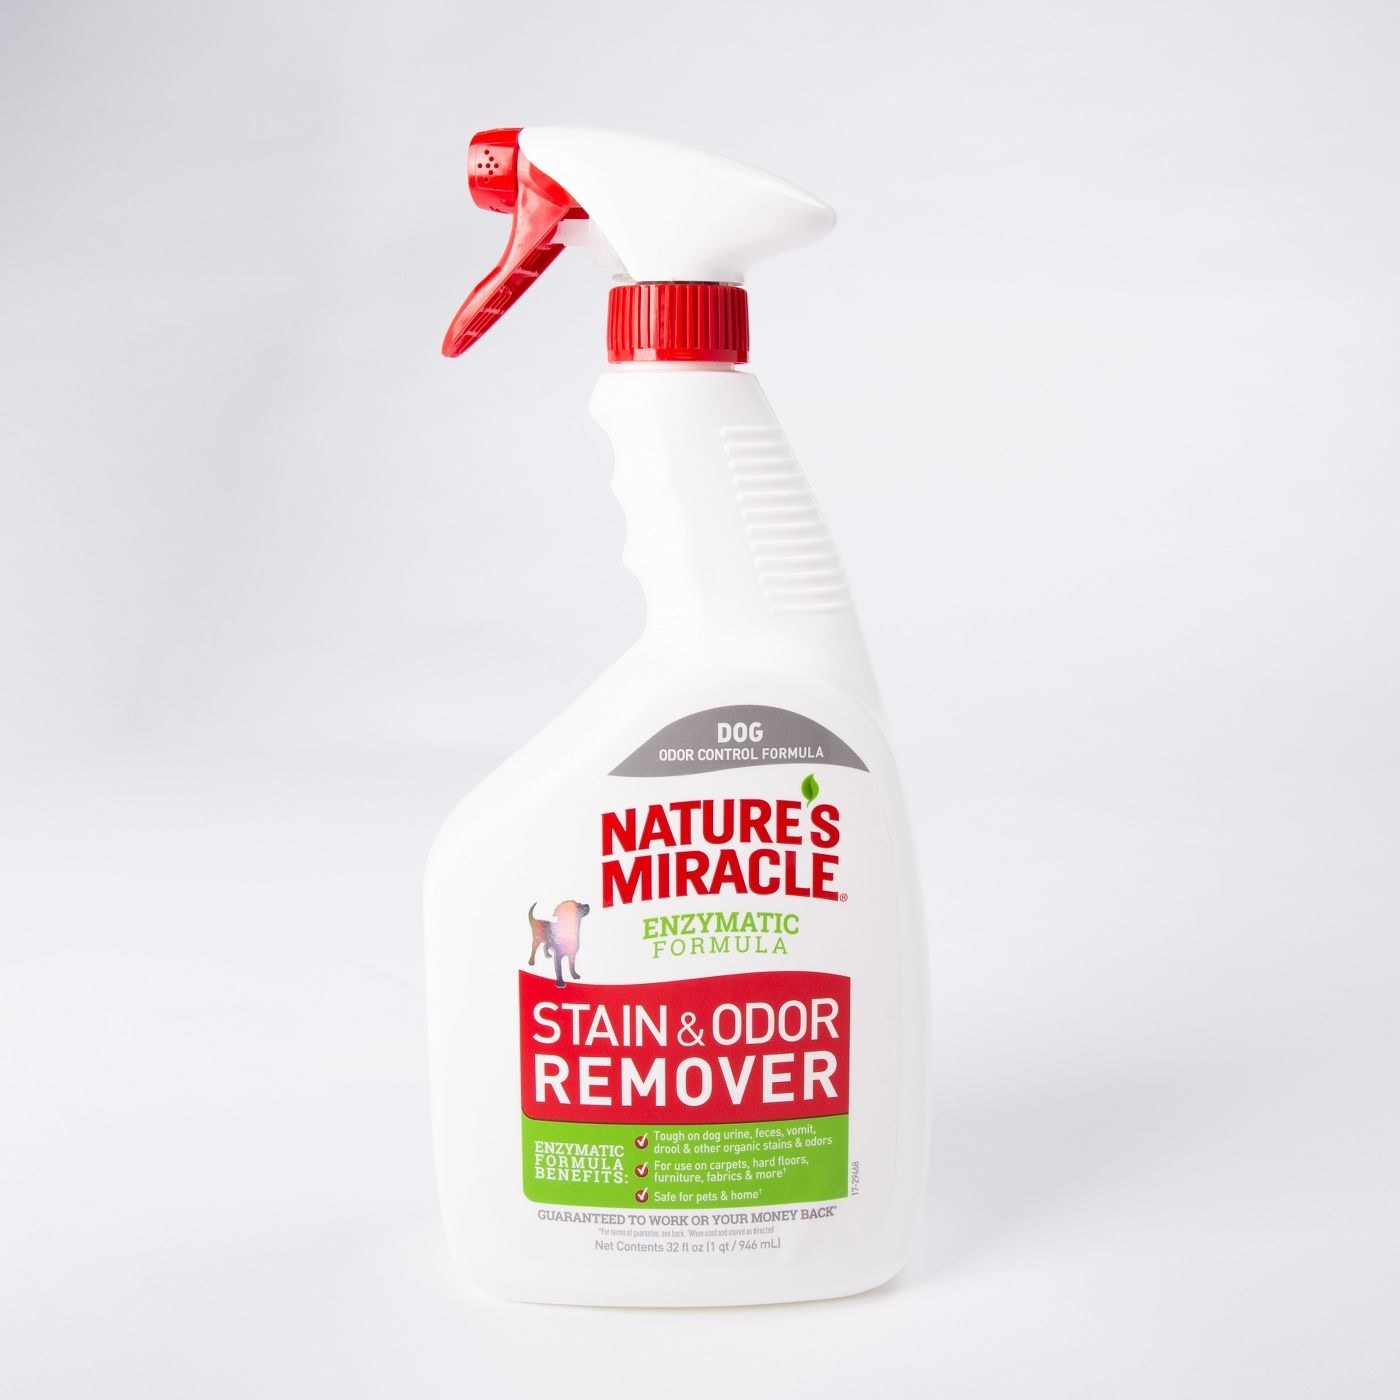 bottle of nature's miracle stain and odor remover